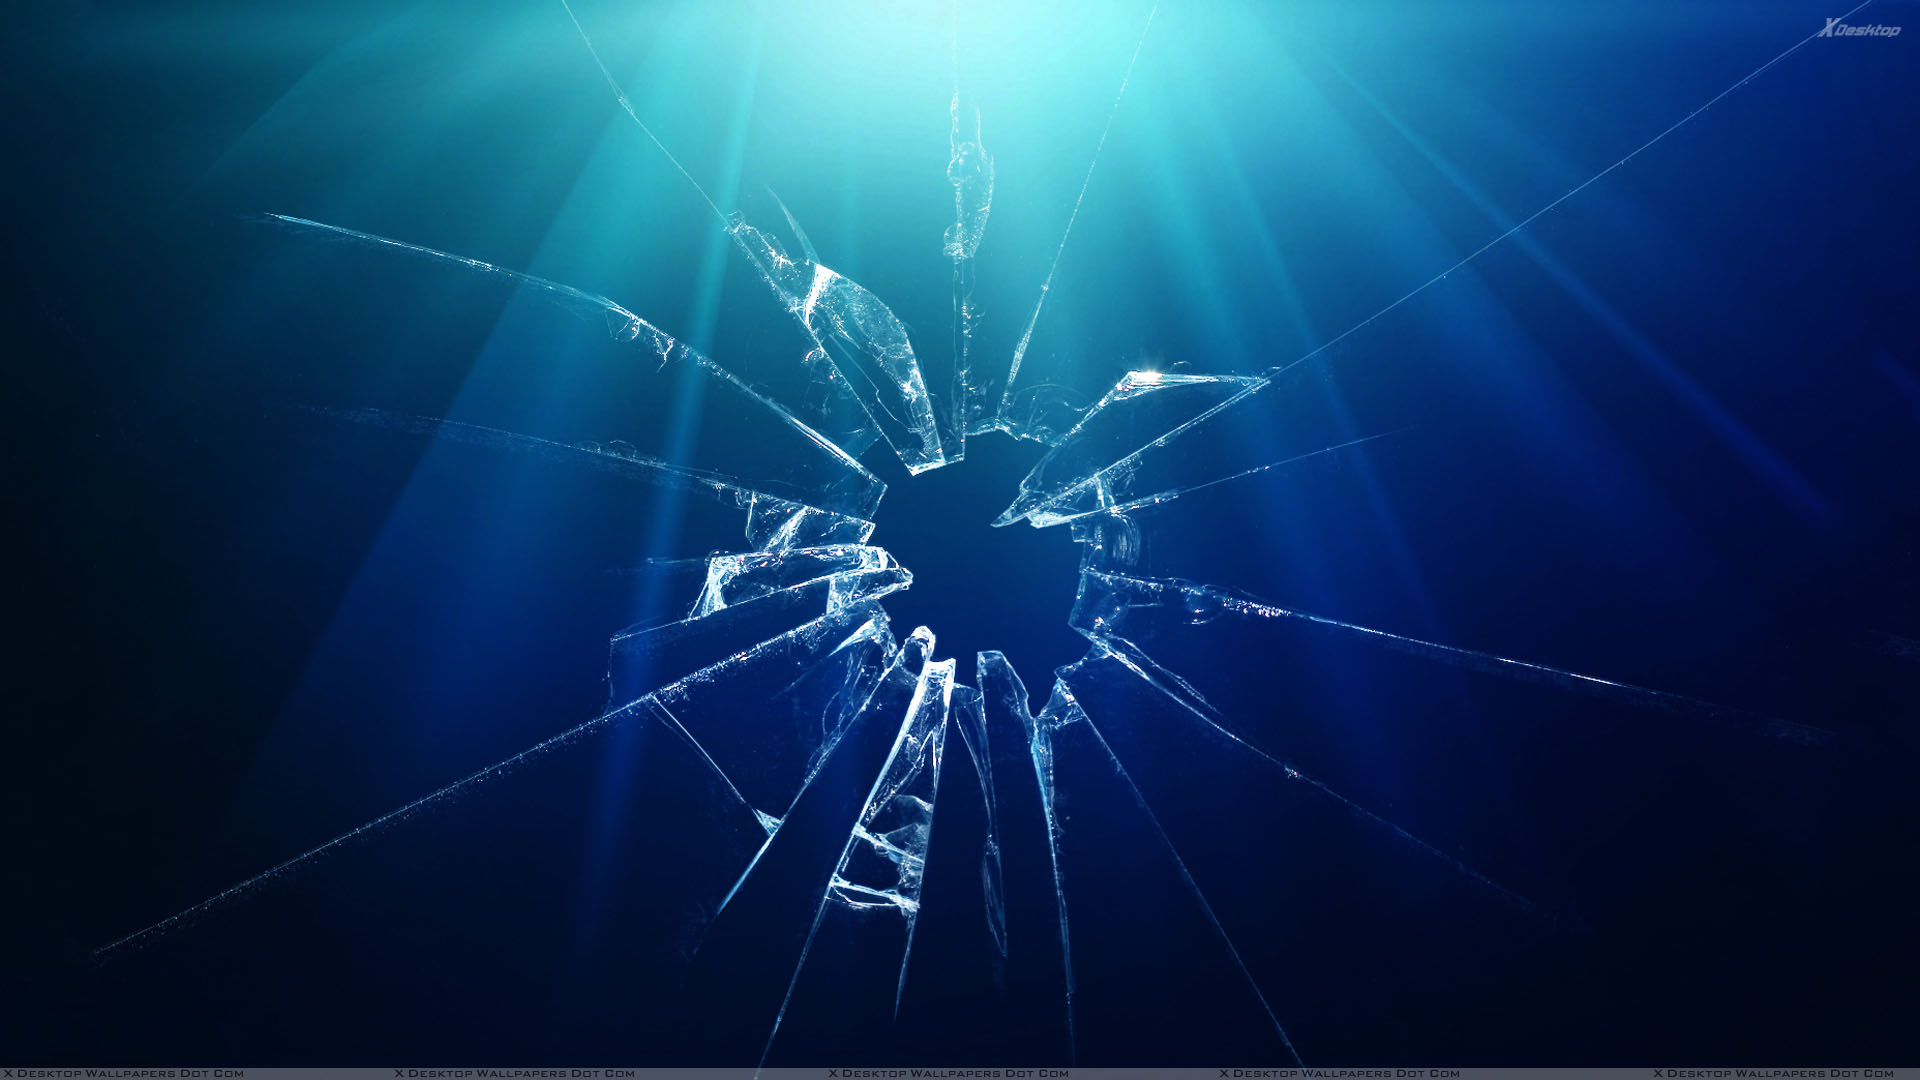 Shattered Glass And Blue Background Wallpaper 1920x1080